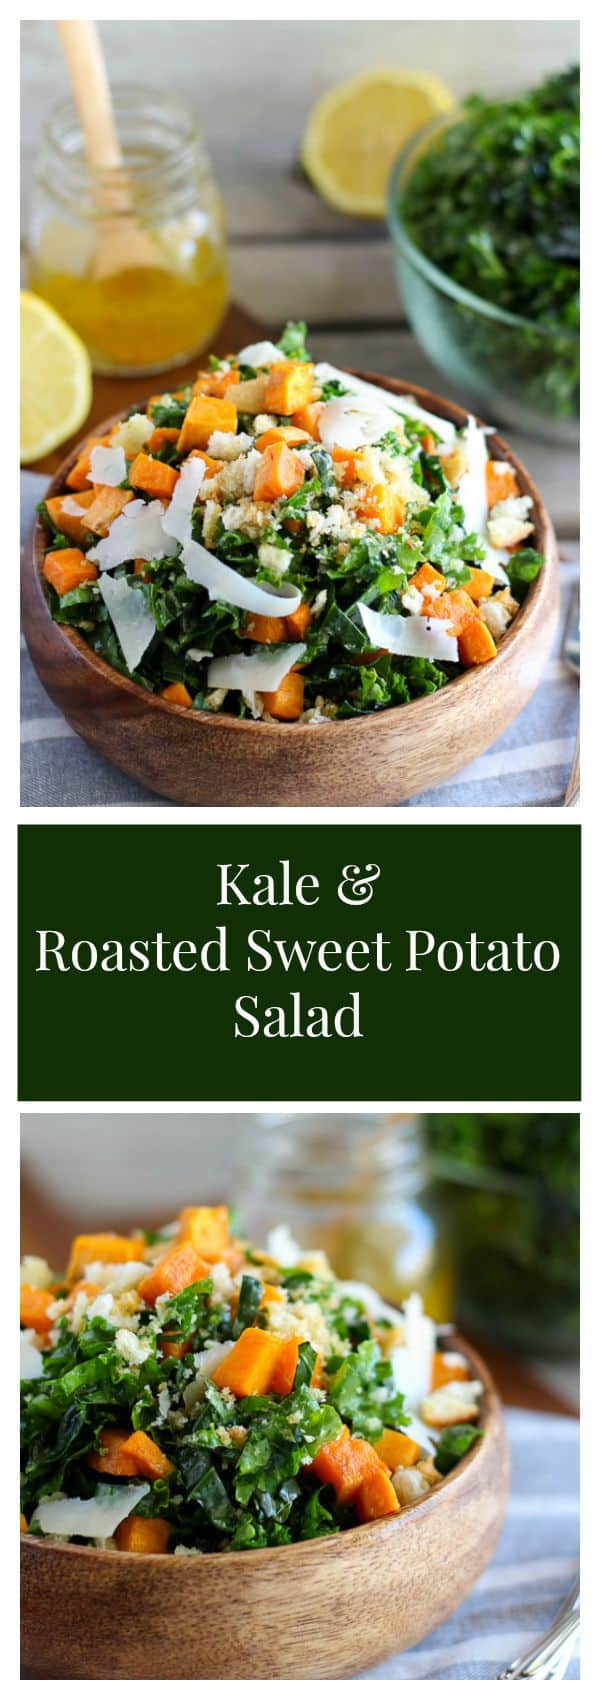 Kale and Sweet Potato Salad - Shredded kale, roasted sweet potatoes ...